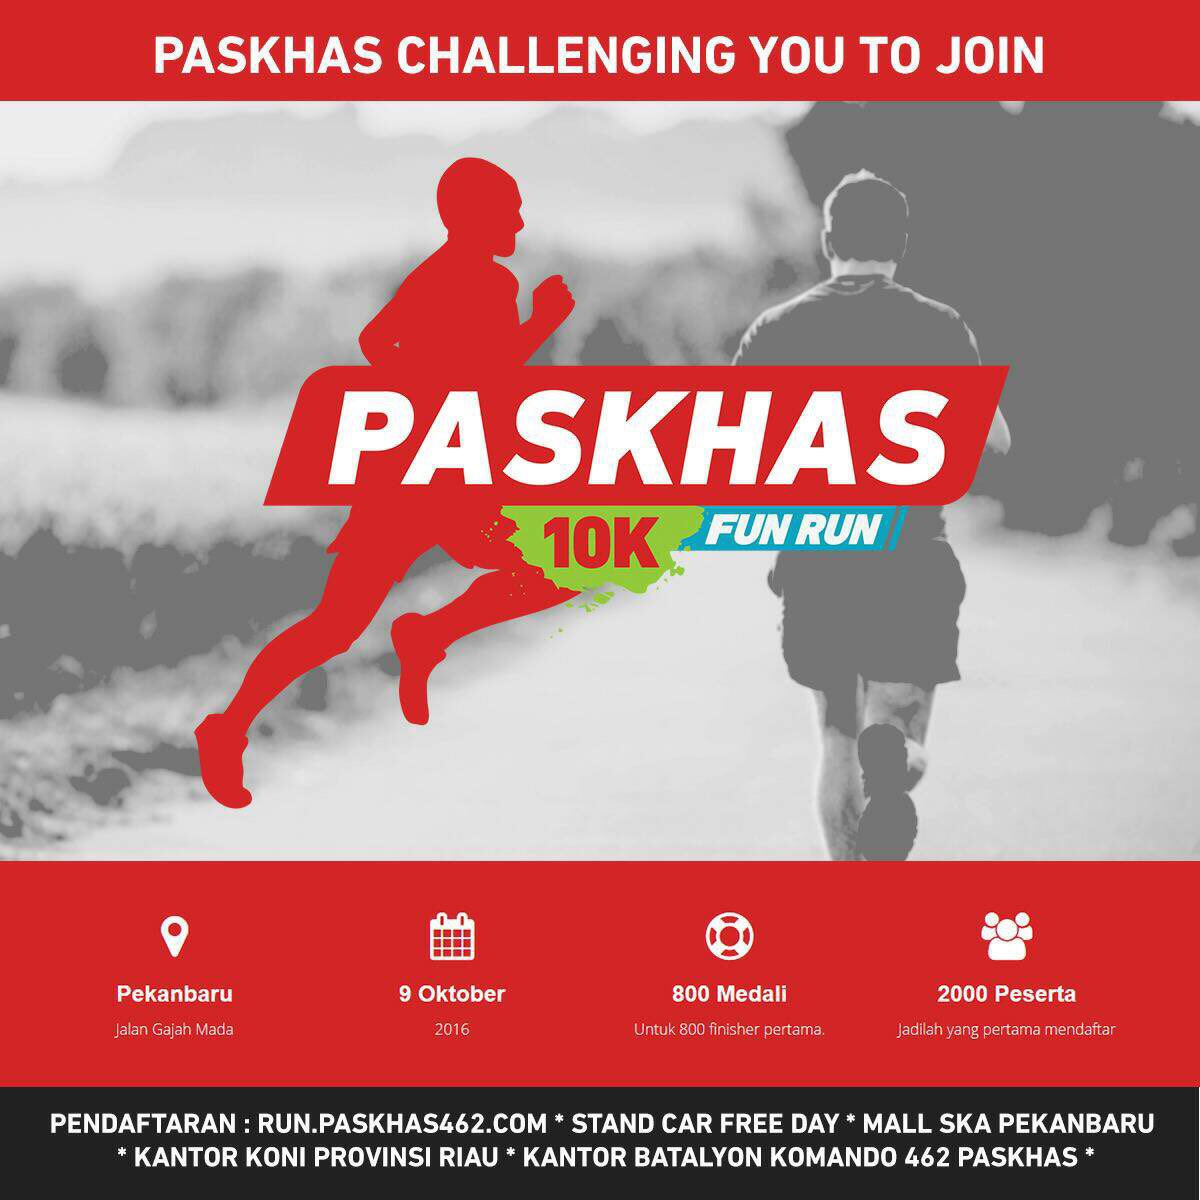 Paskhas 10K Fun Run